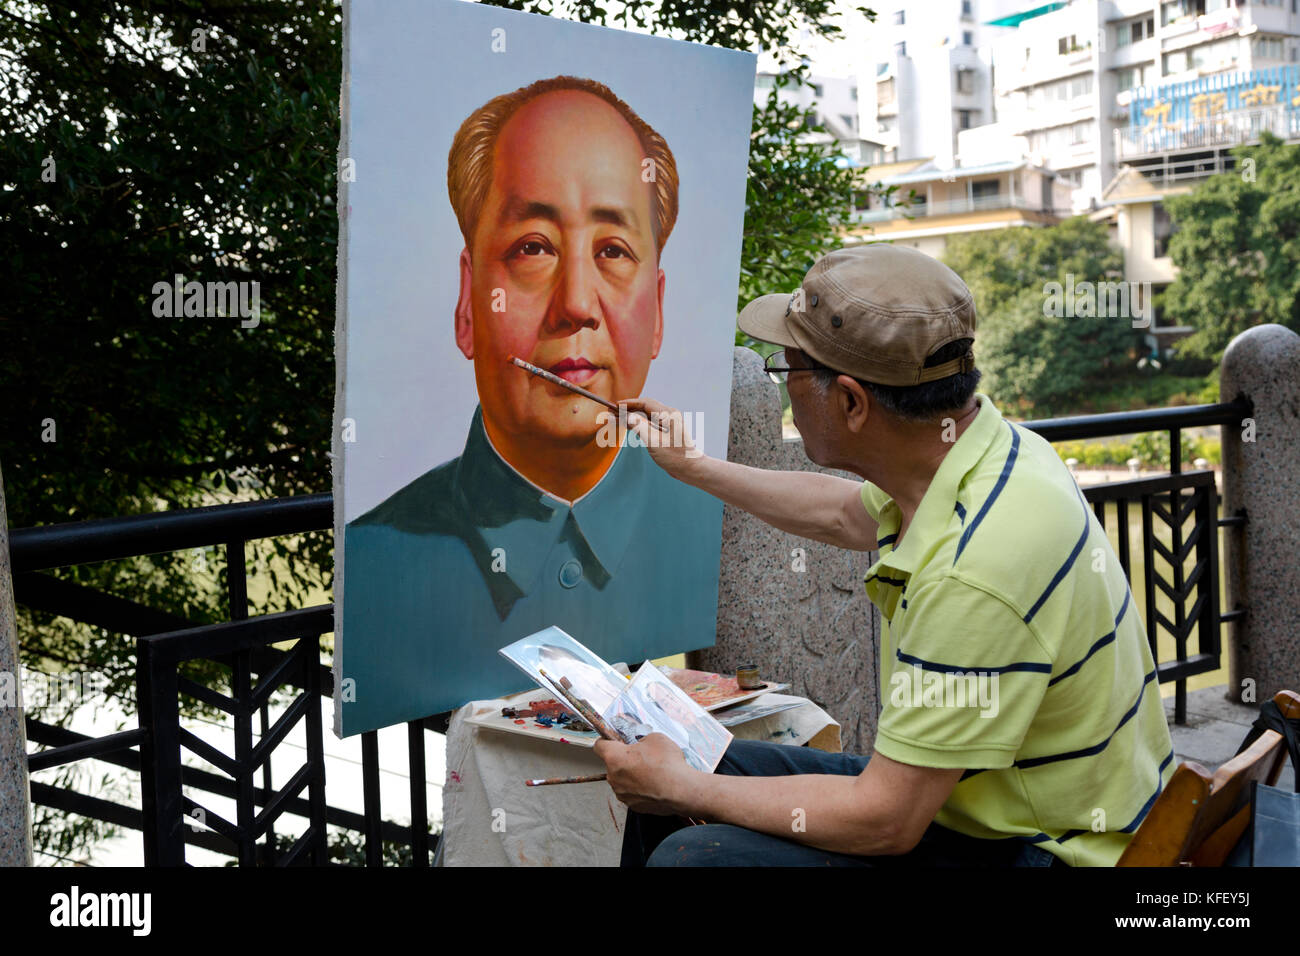 a biography of the chinese leader mao zedong Known as chairman mao, he led the chinese communist party from 1935  the country's future leader, mao zedong, was born on  by biographycom editors and a.